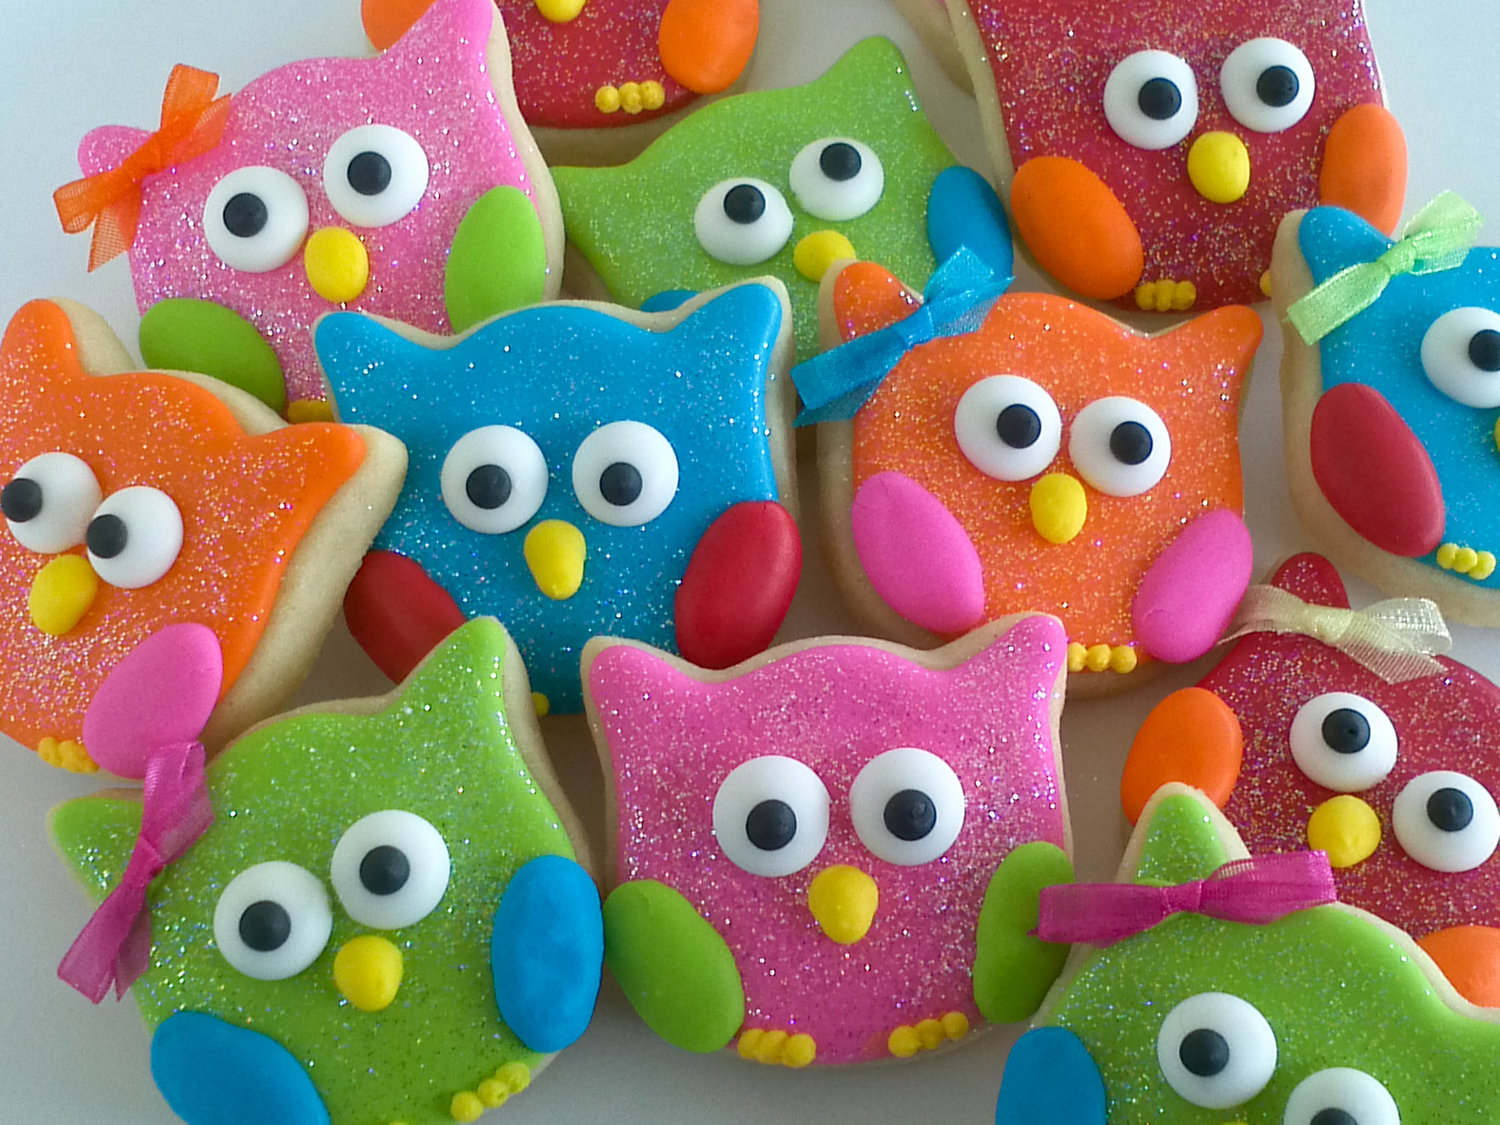 cute owl cookies with Jordan almonds for wings